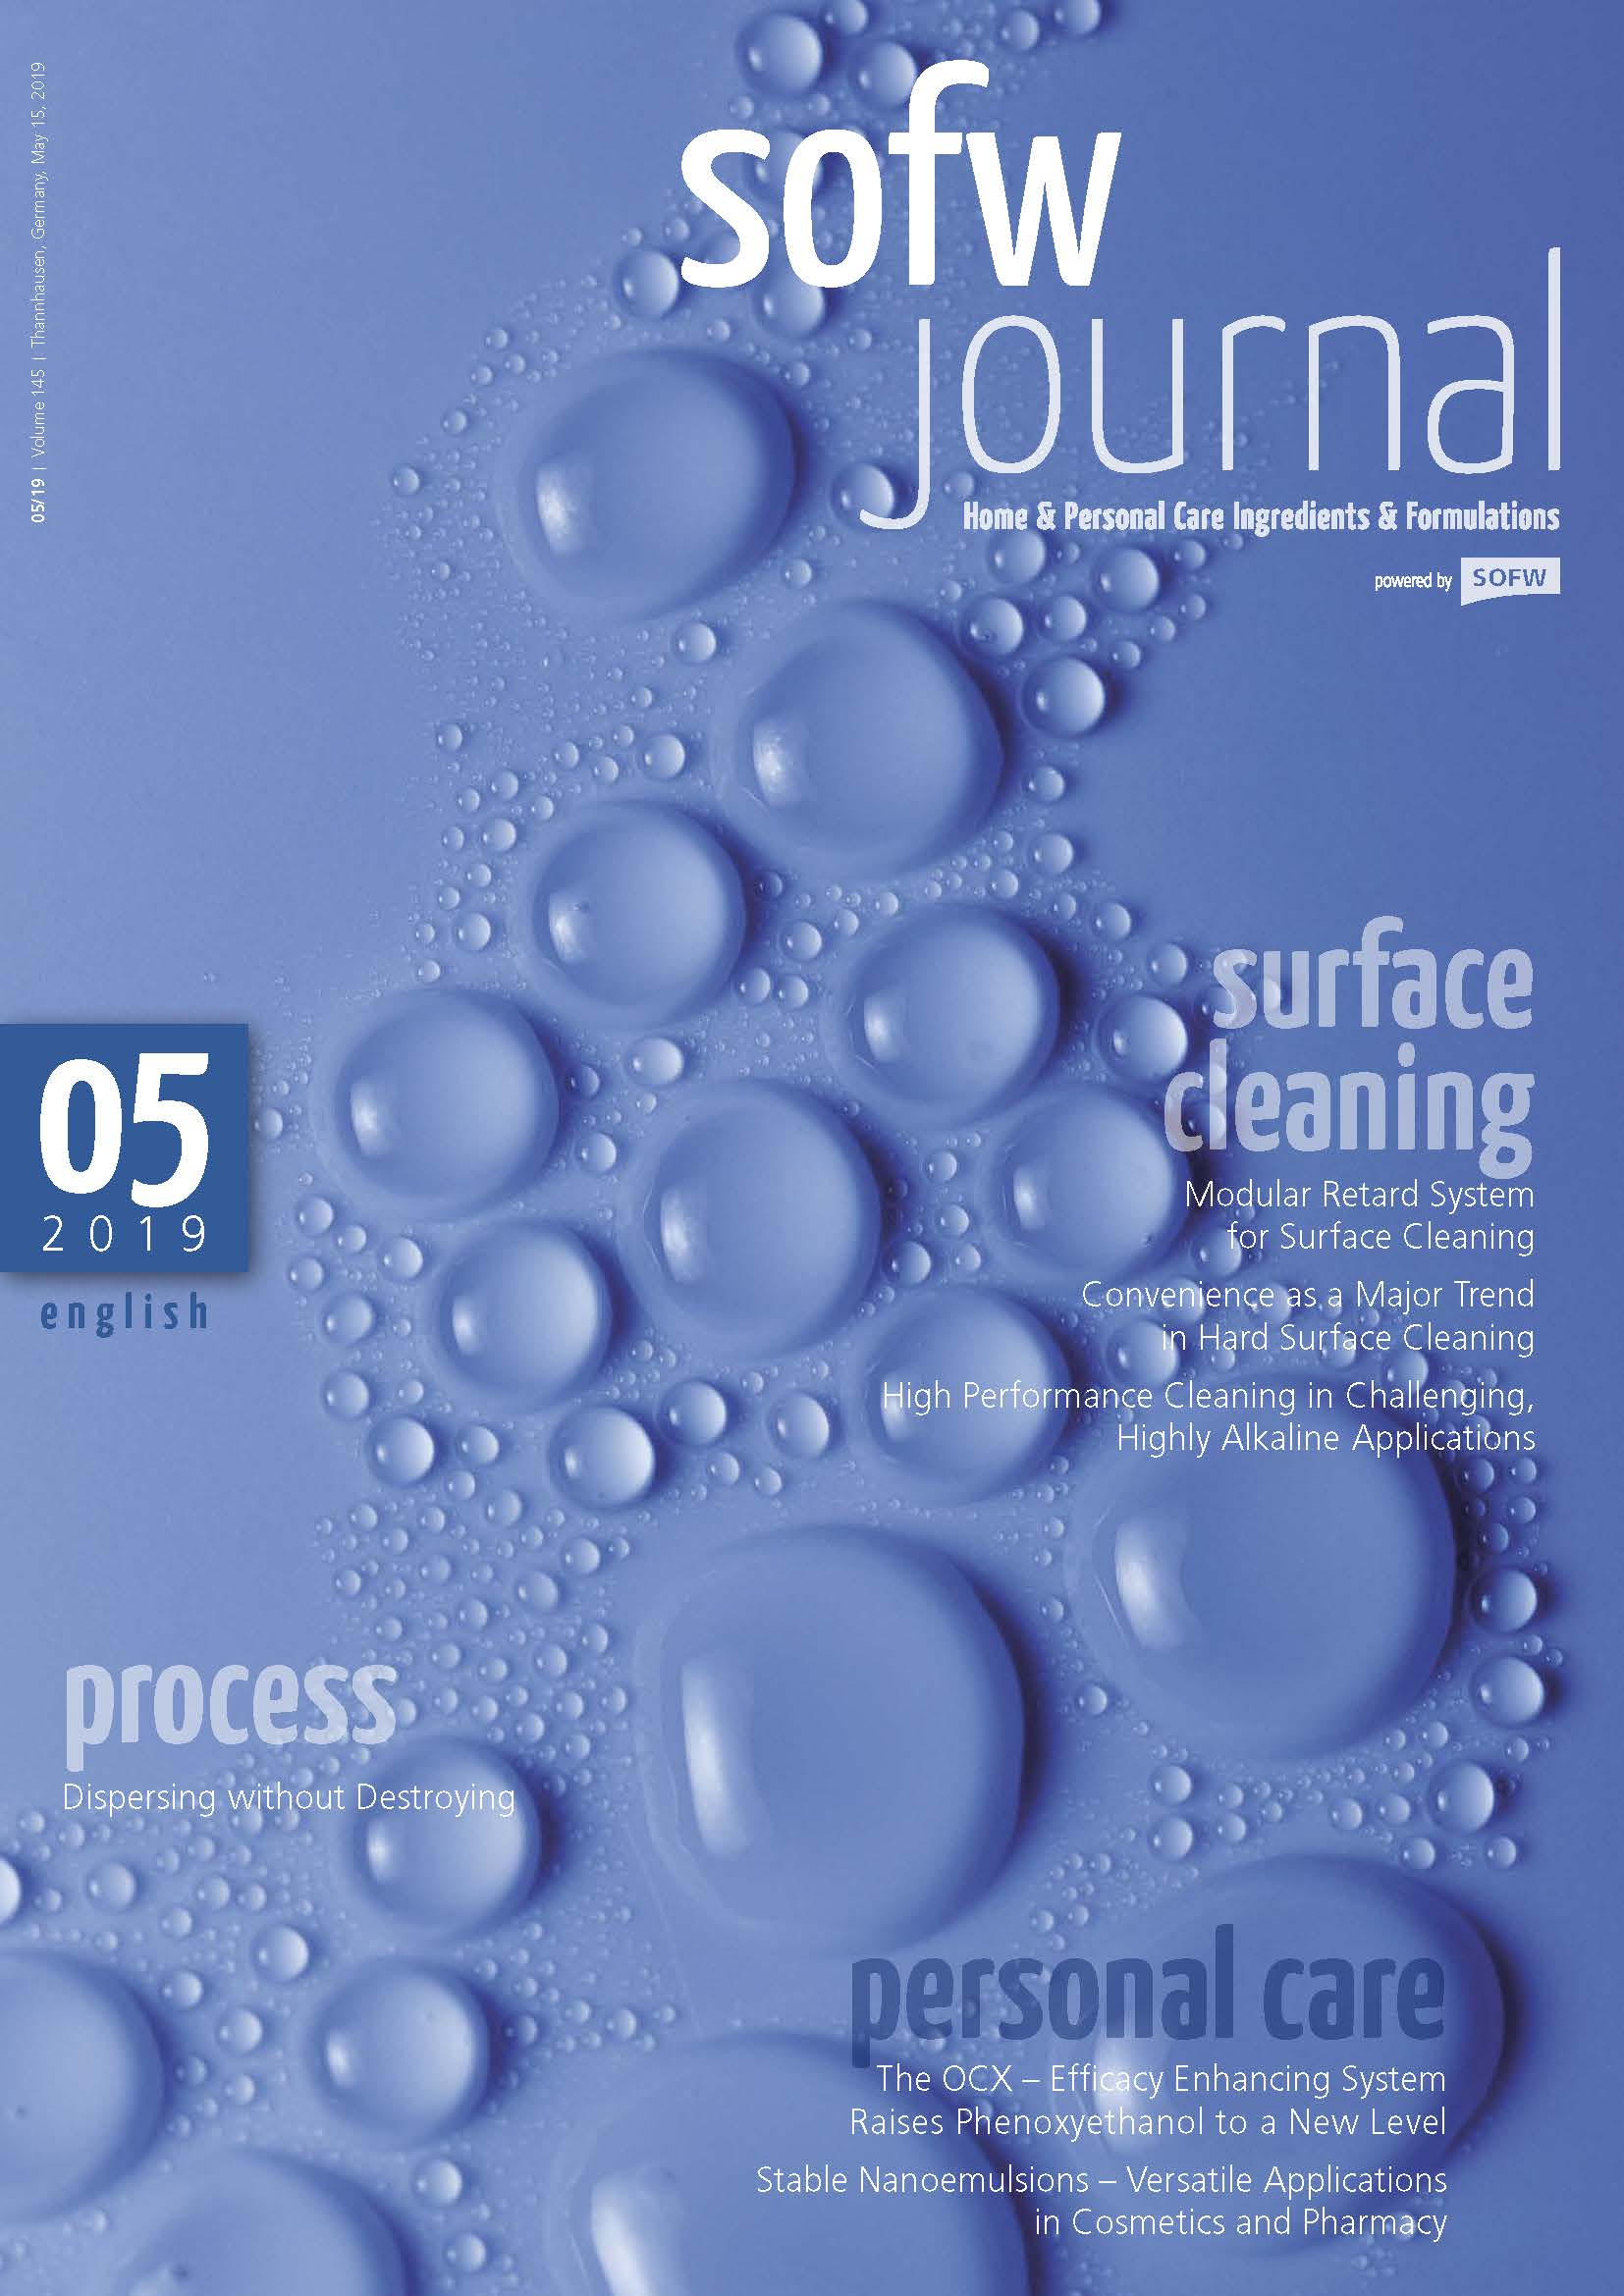 sofwjournal_en_2019_05_cover_167123658